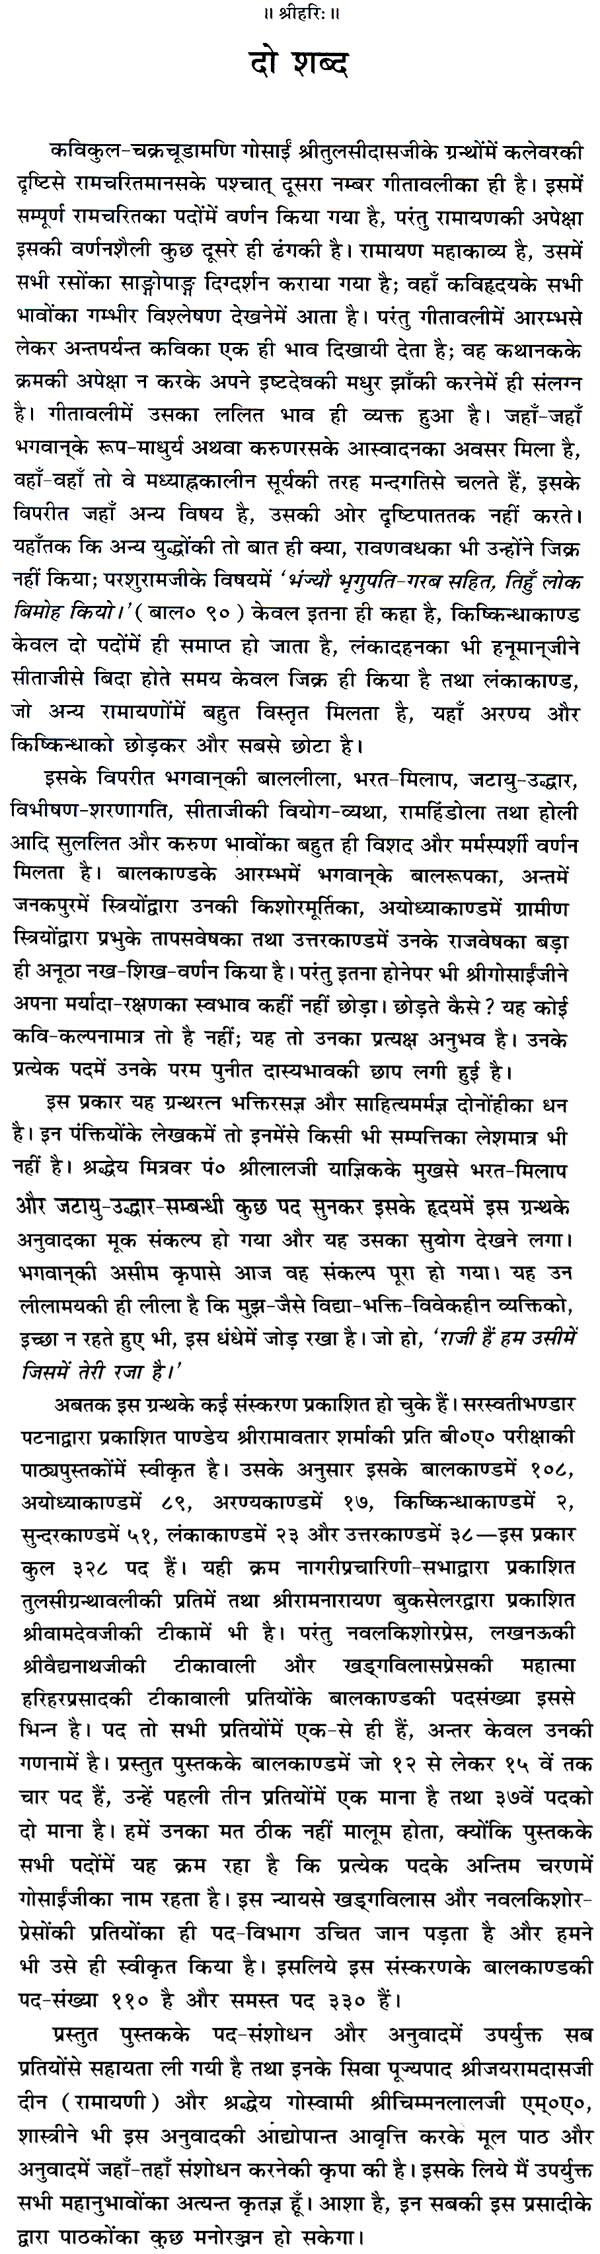 free shia islam in colonial india religion community and sectarianism